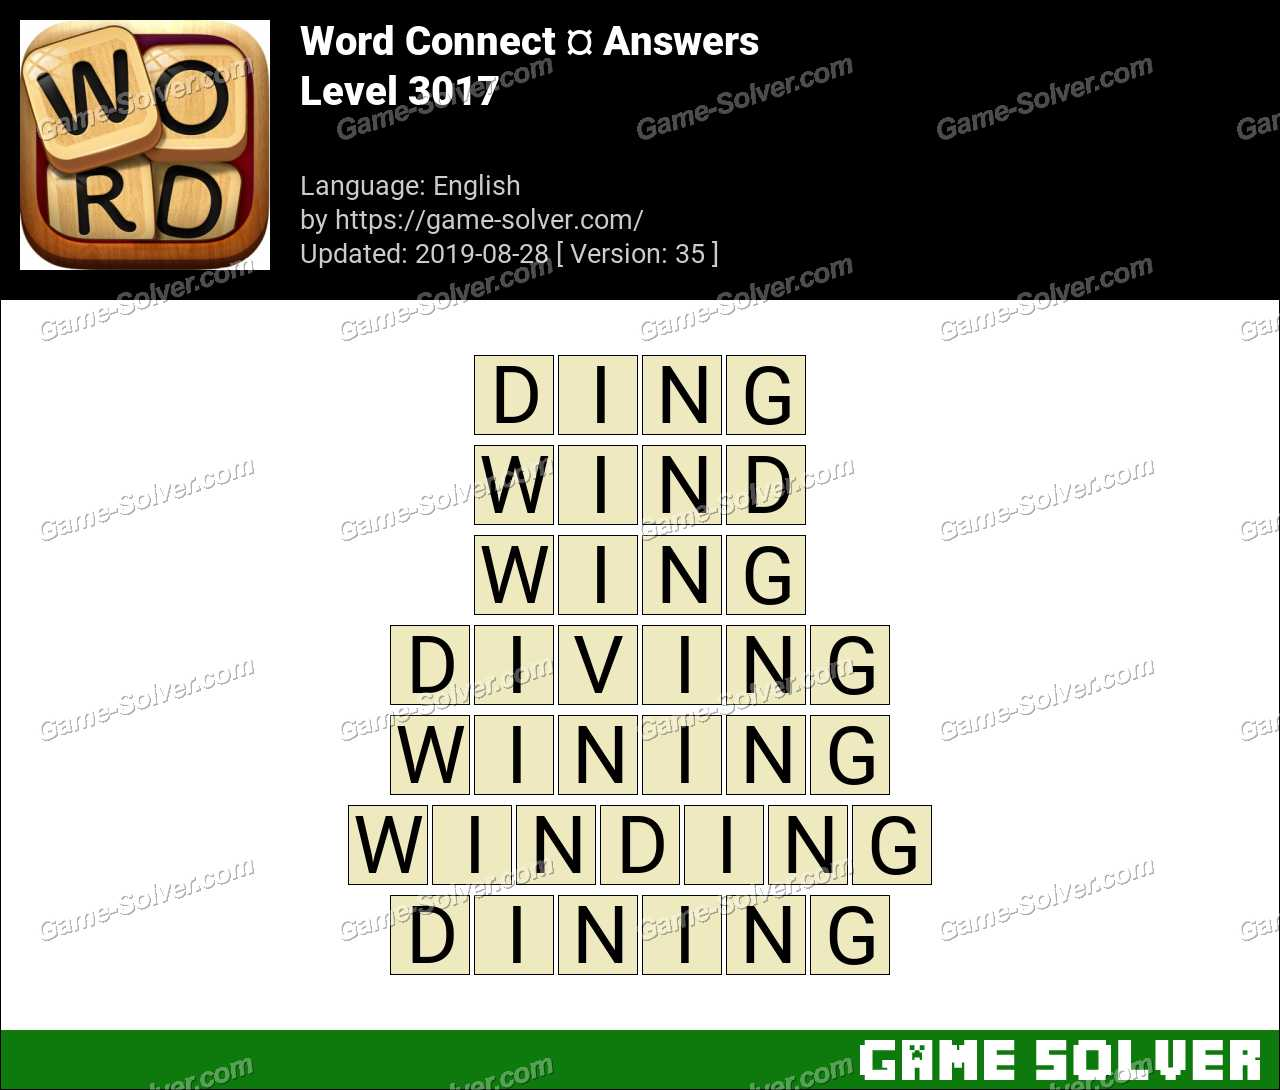 Word Connect Level 3017 Answers